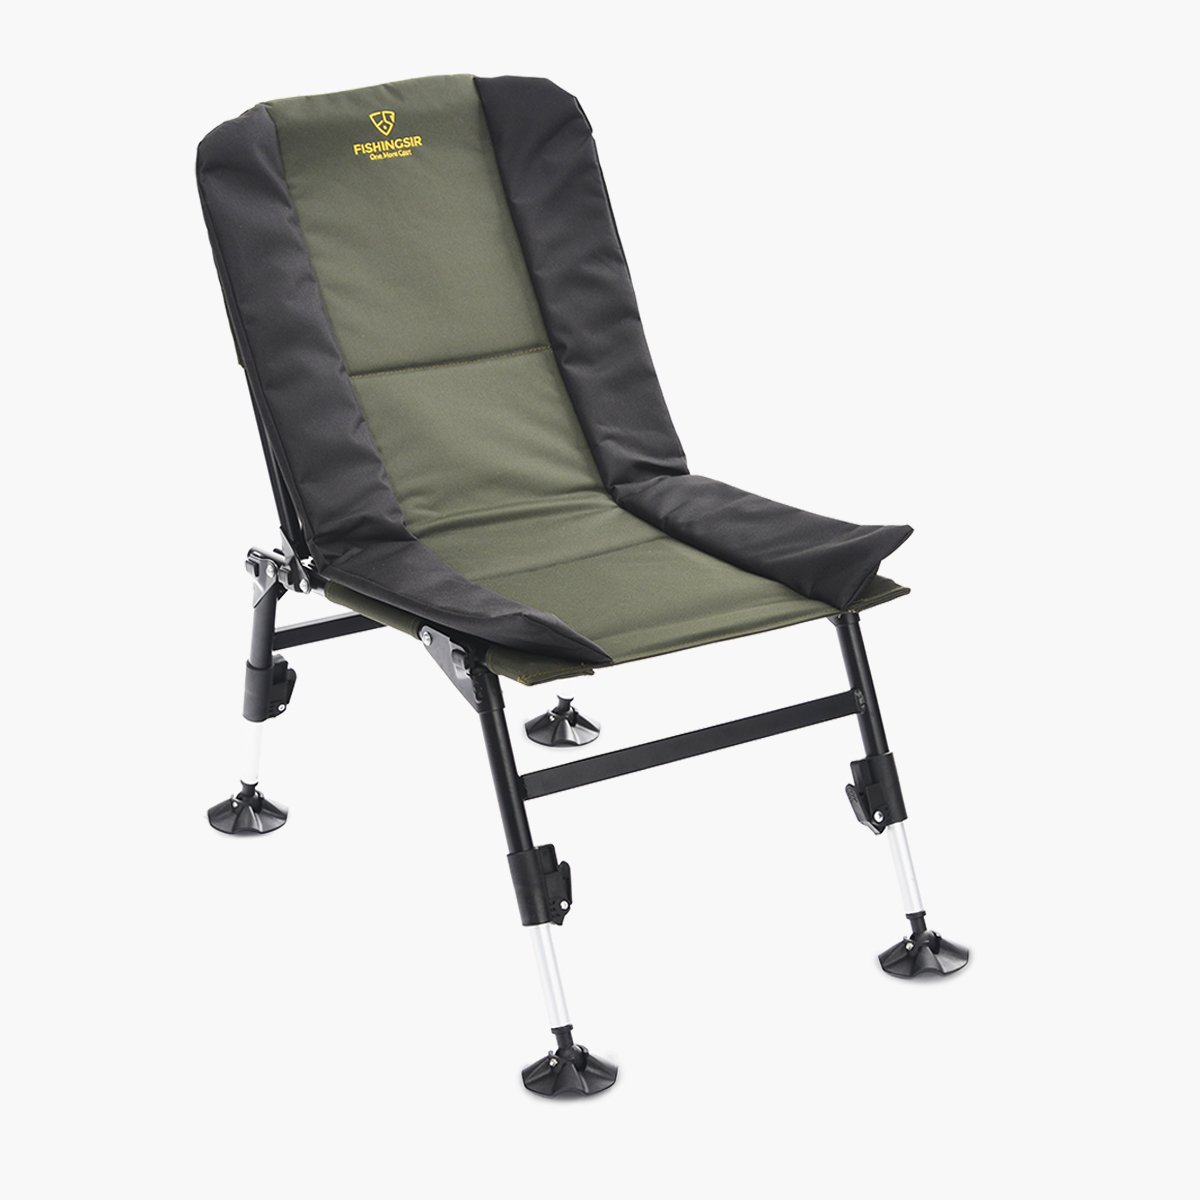 FISHINGSIR Folding Chairs Oversized Padded Zero Gravity Chair Supports 330lbs